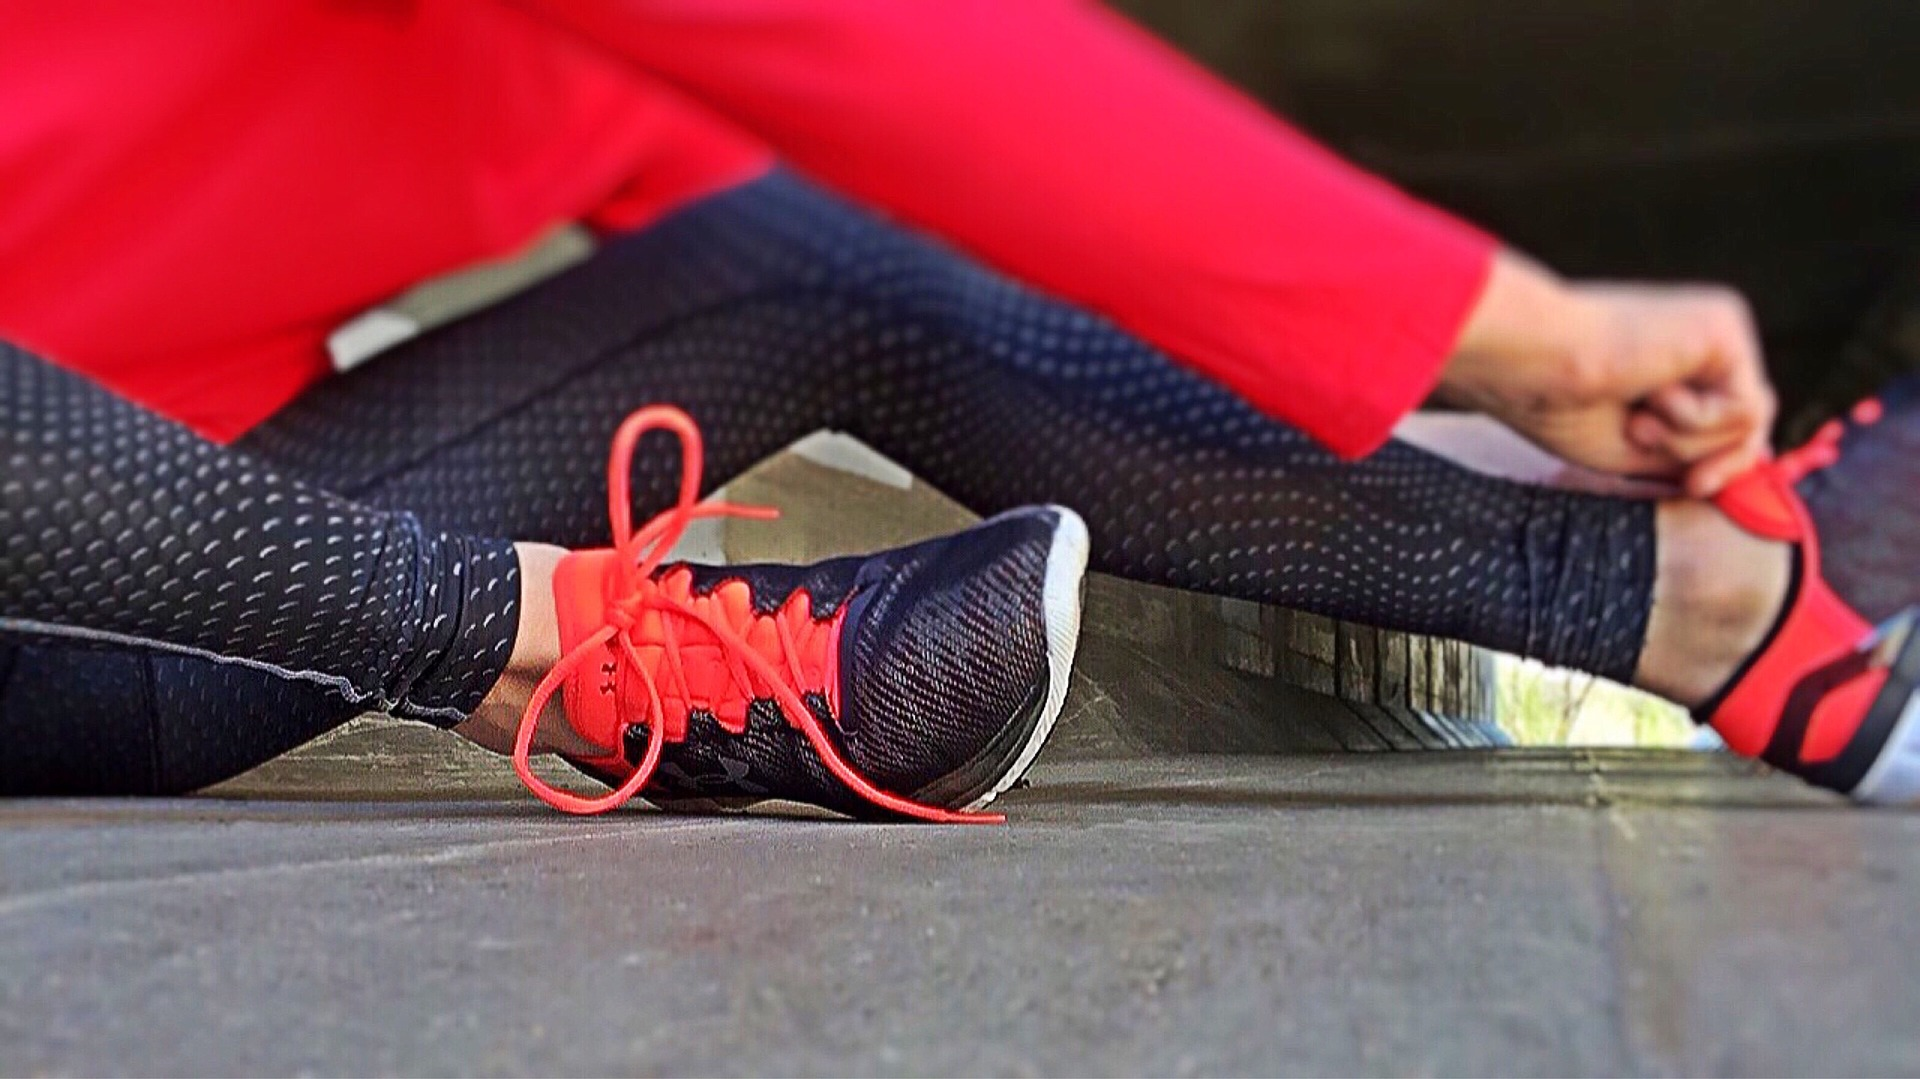 A workout equivalent of 4,000 steps can prime the brain for learning